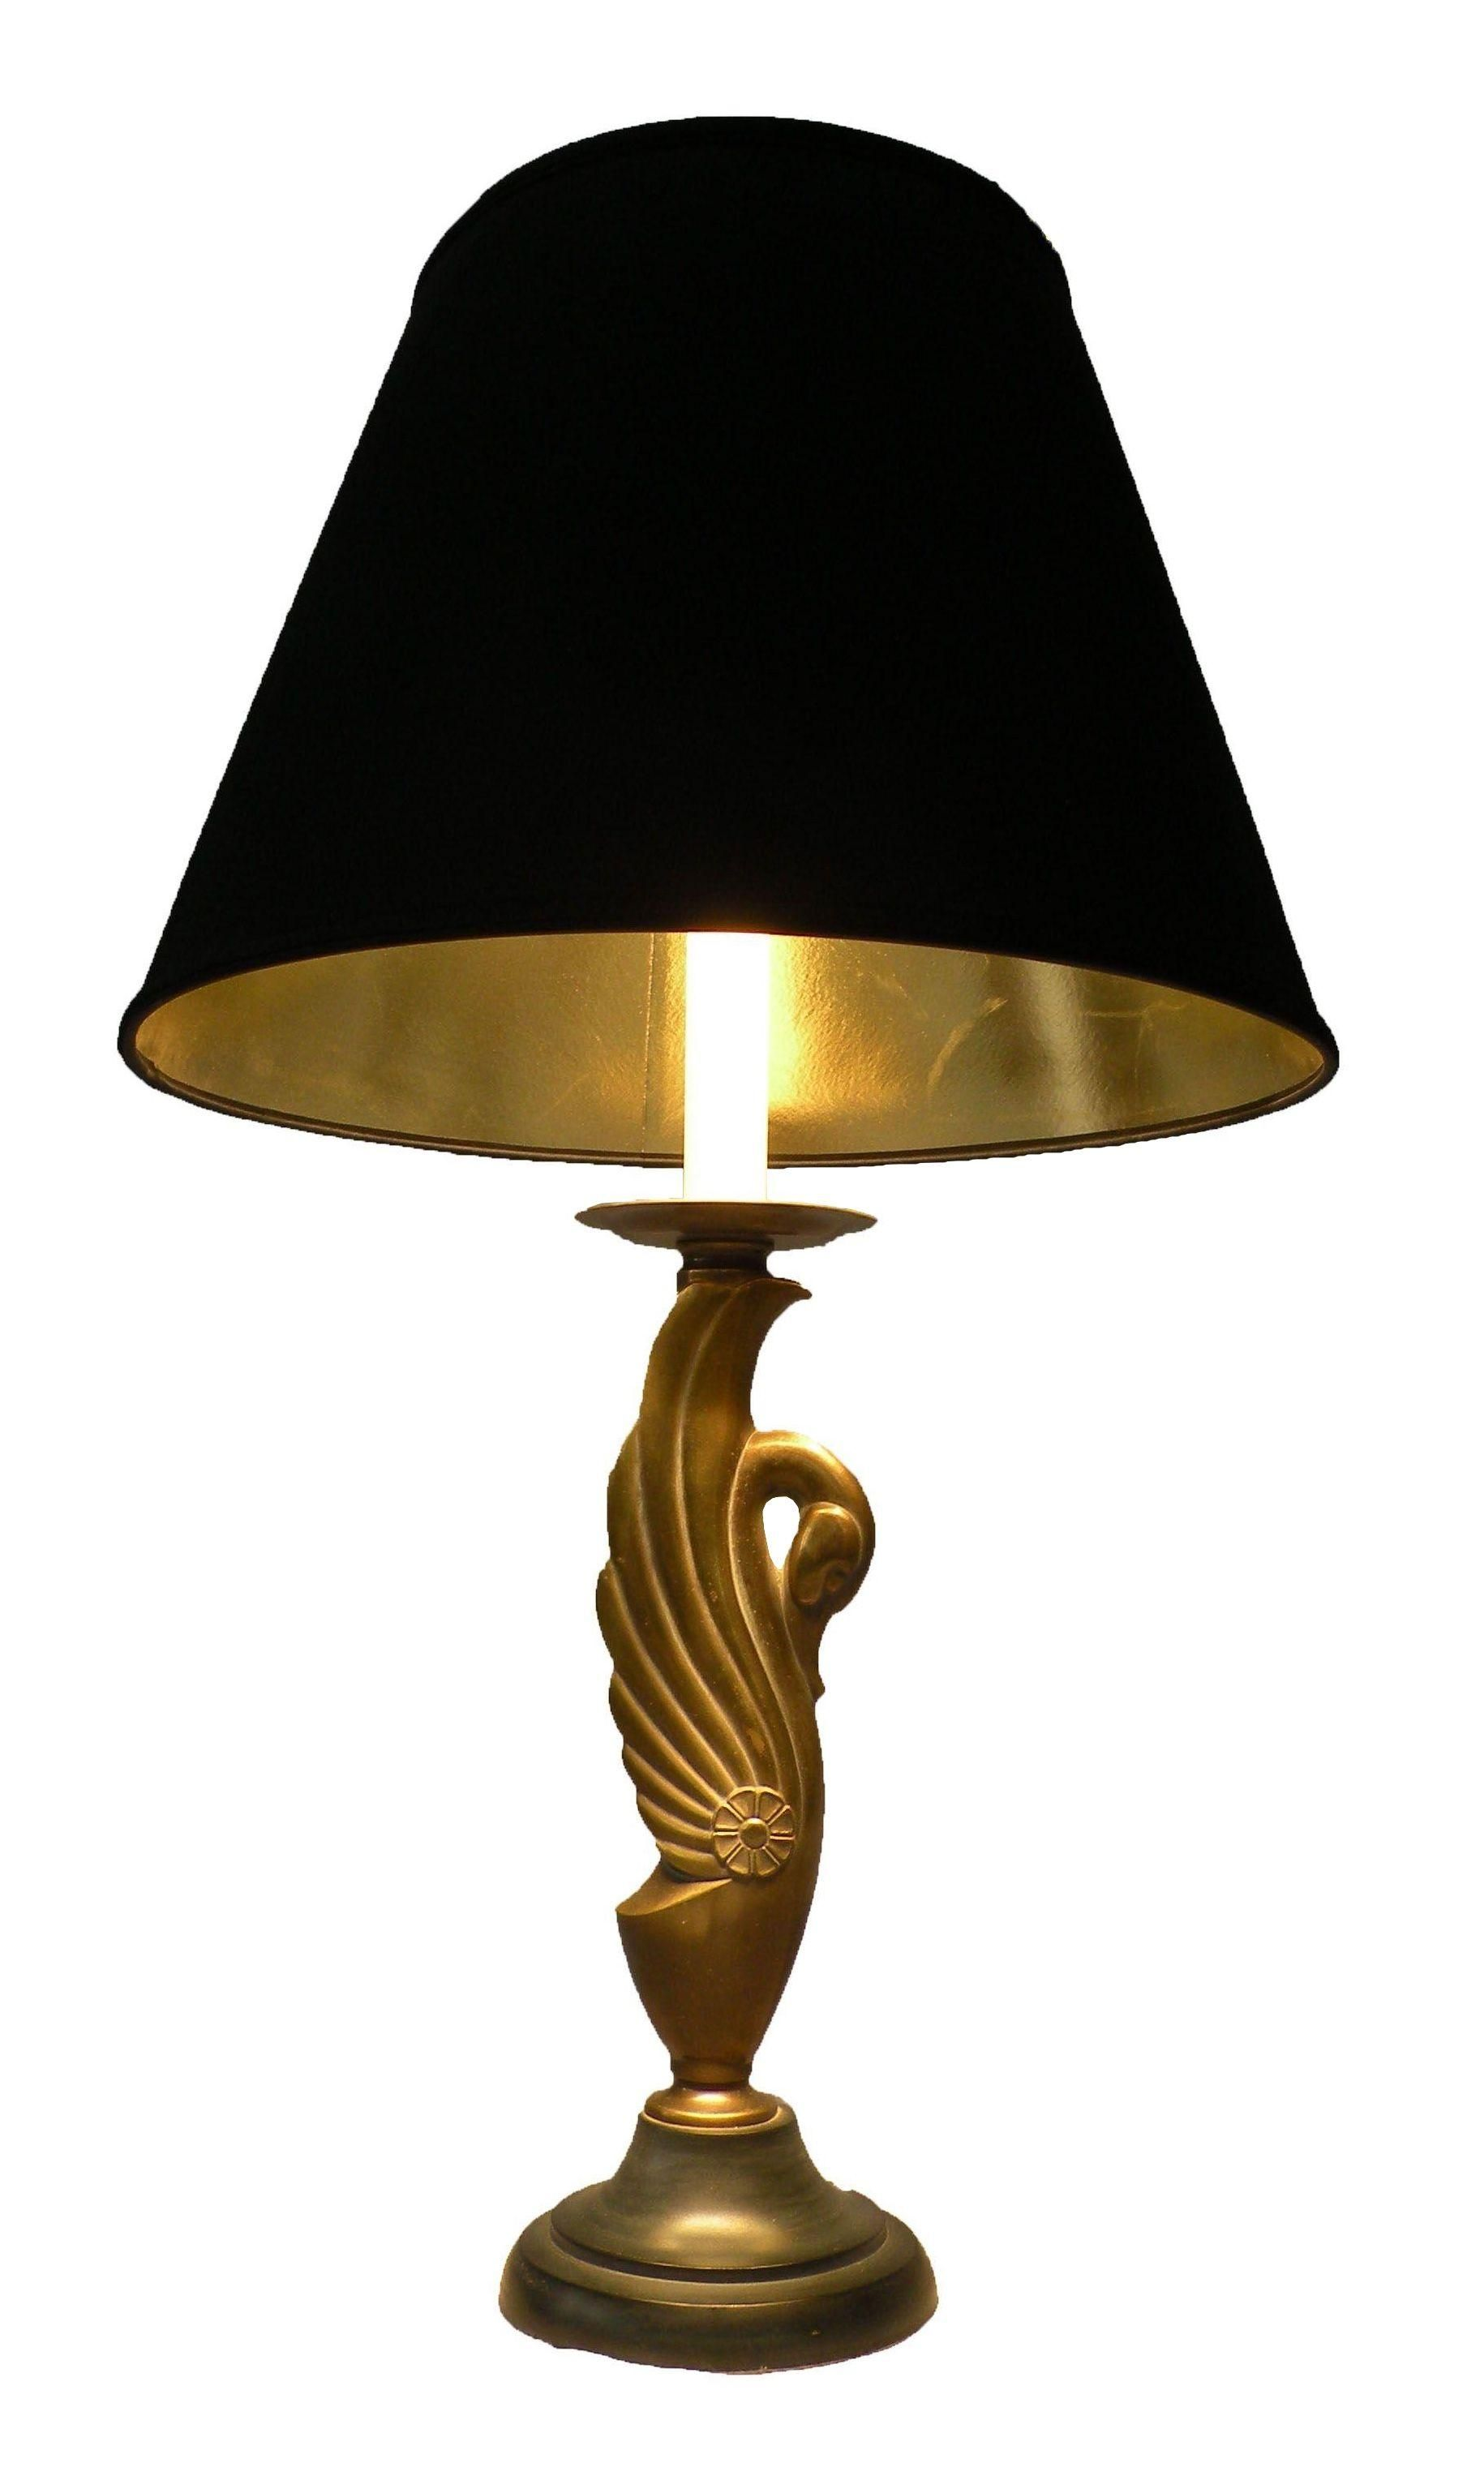 Mediterranean lamp with embroidered silk shade hollywood regency elegant brass swan lamp with black gold lined lamp shade good vintage condition aloadofball Choice Image